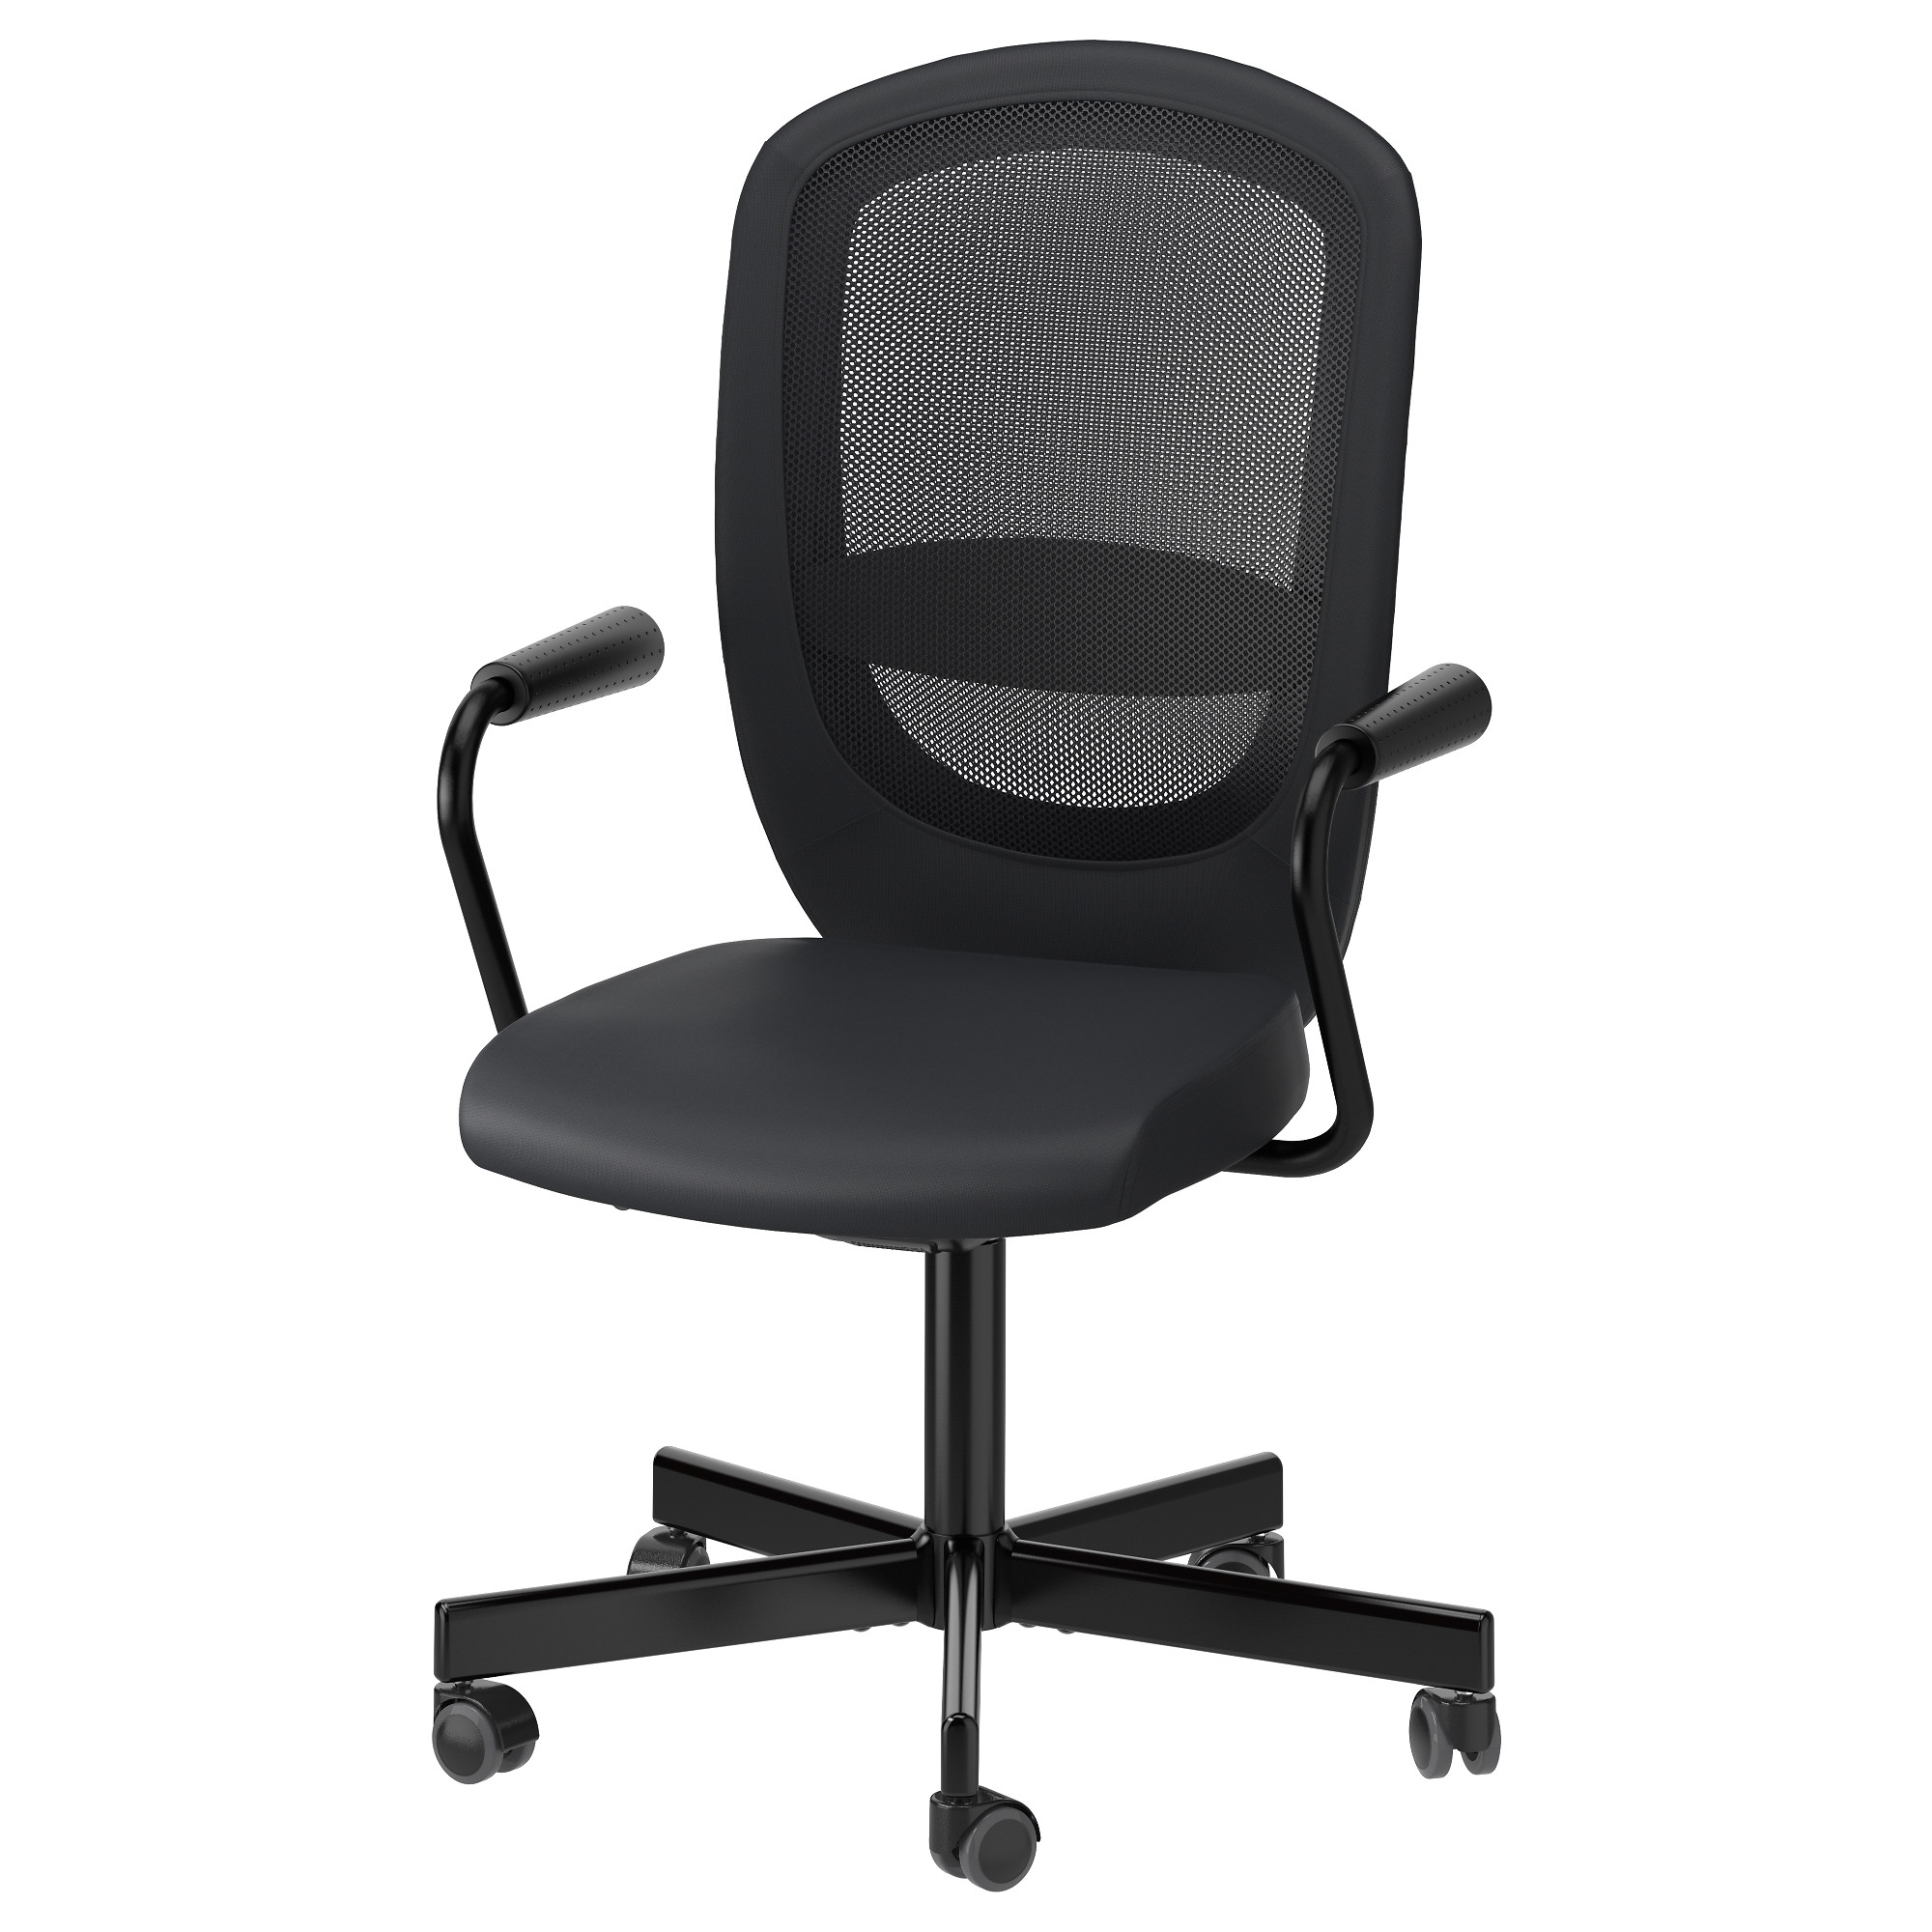 office chair images. Office Chair Images H